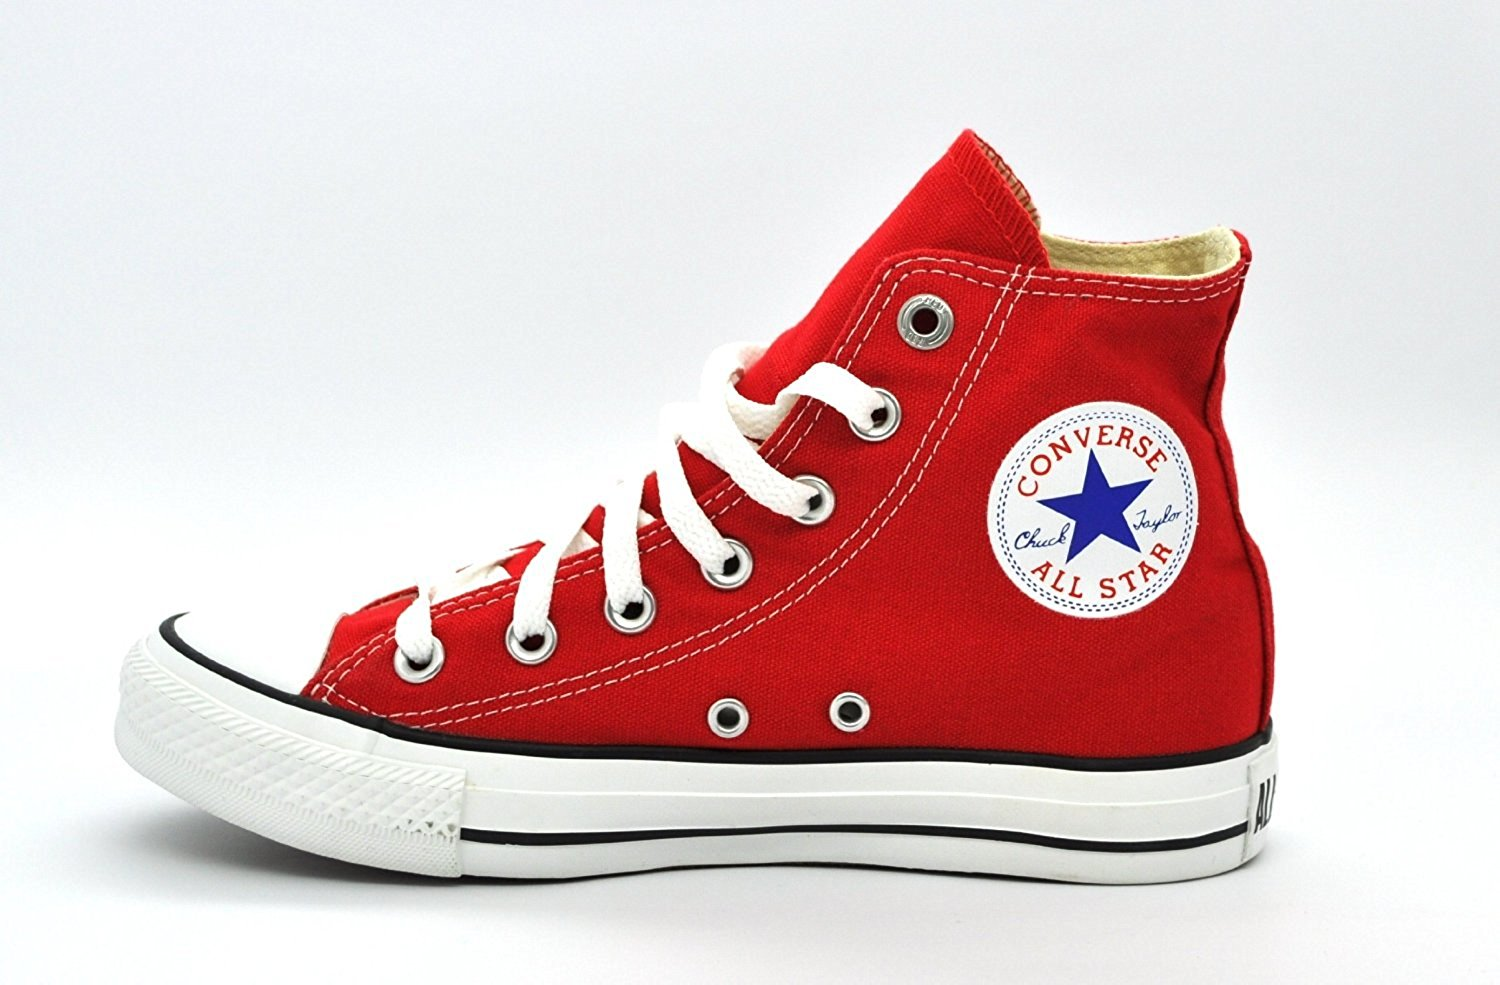 red converse amazon.com | converse unisex high top sneakers red m9621 9.5 | fashion  sneakers QNKYDVO